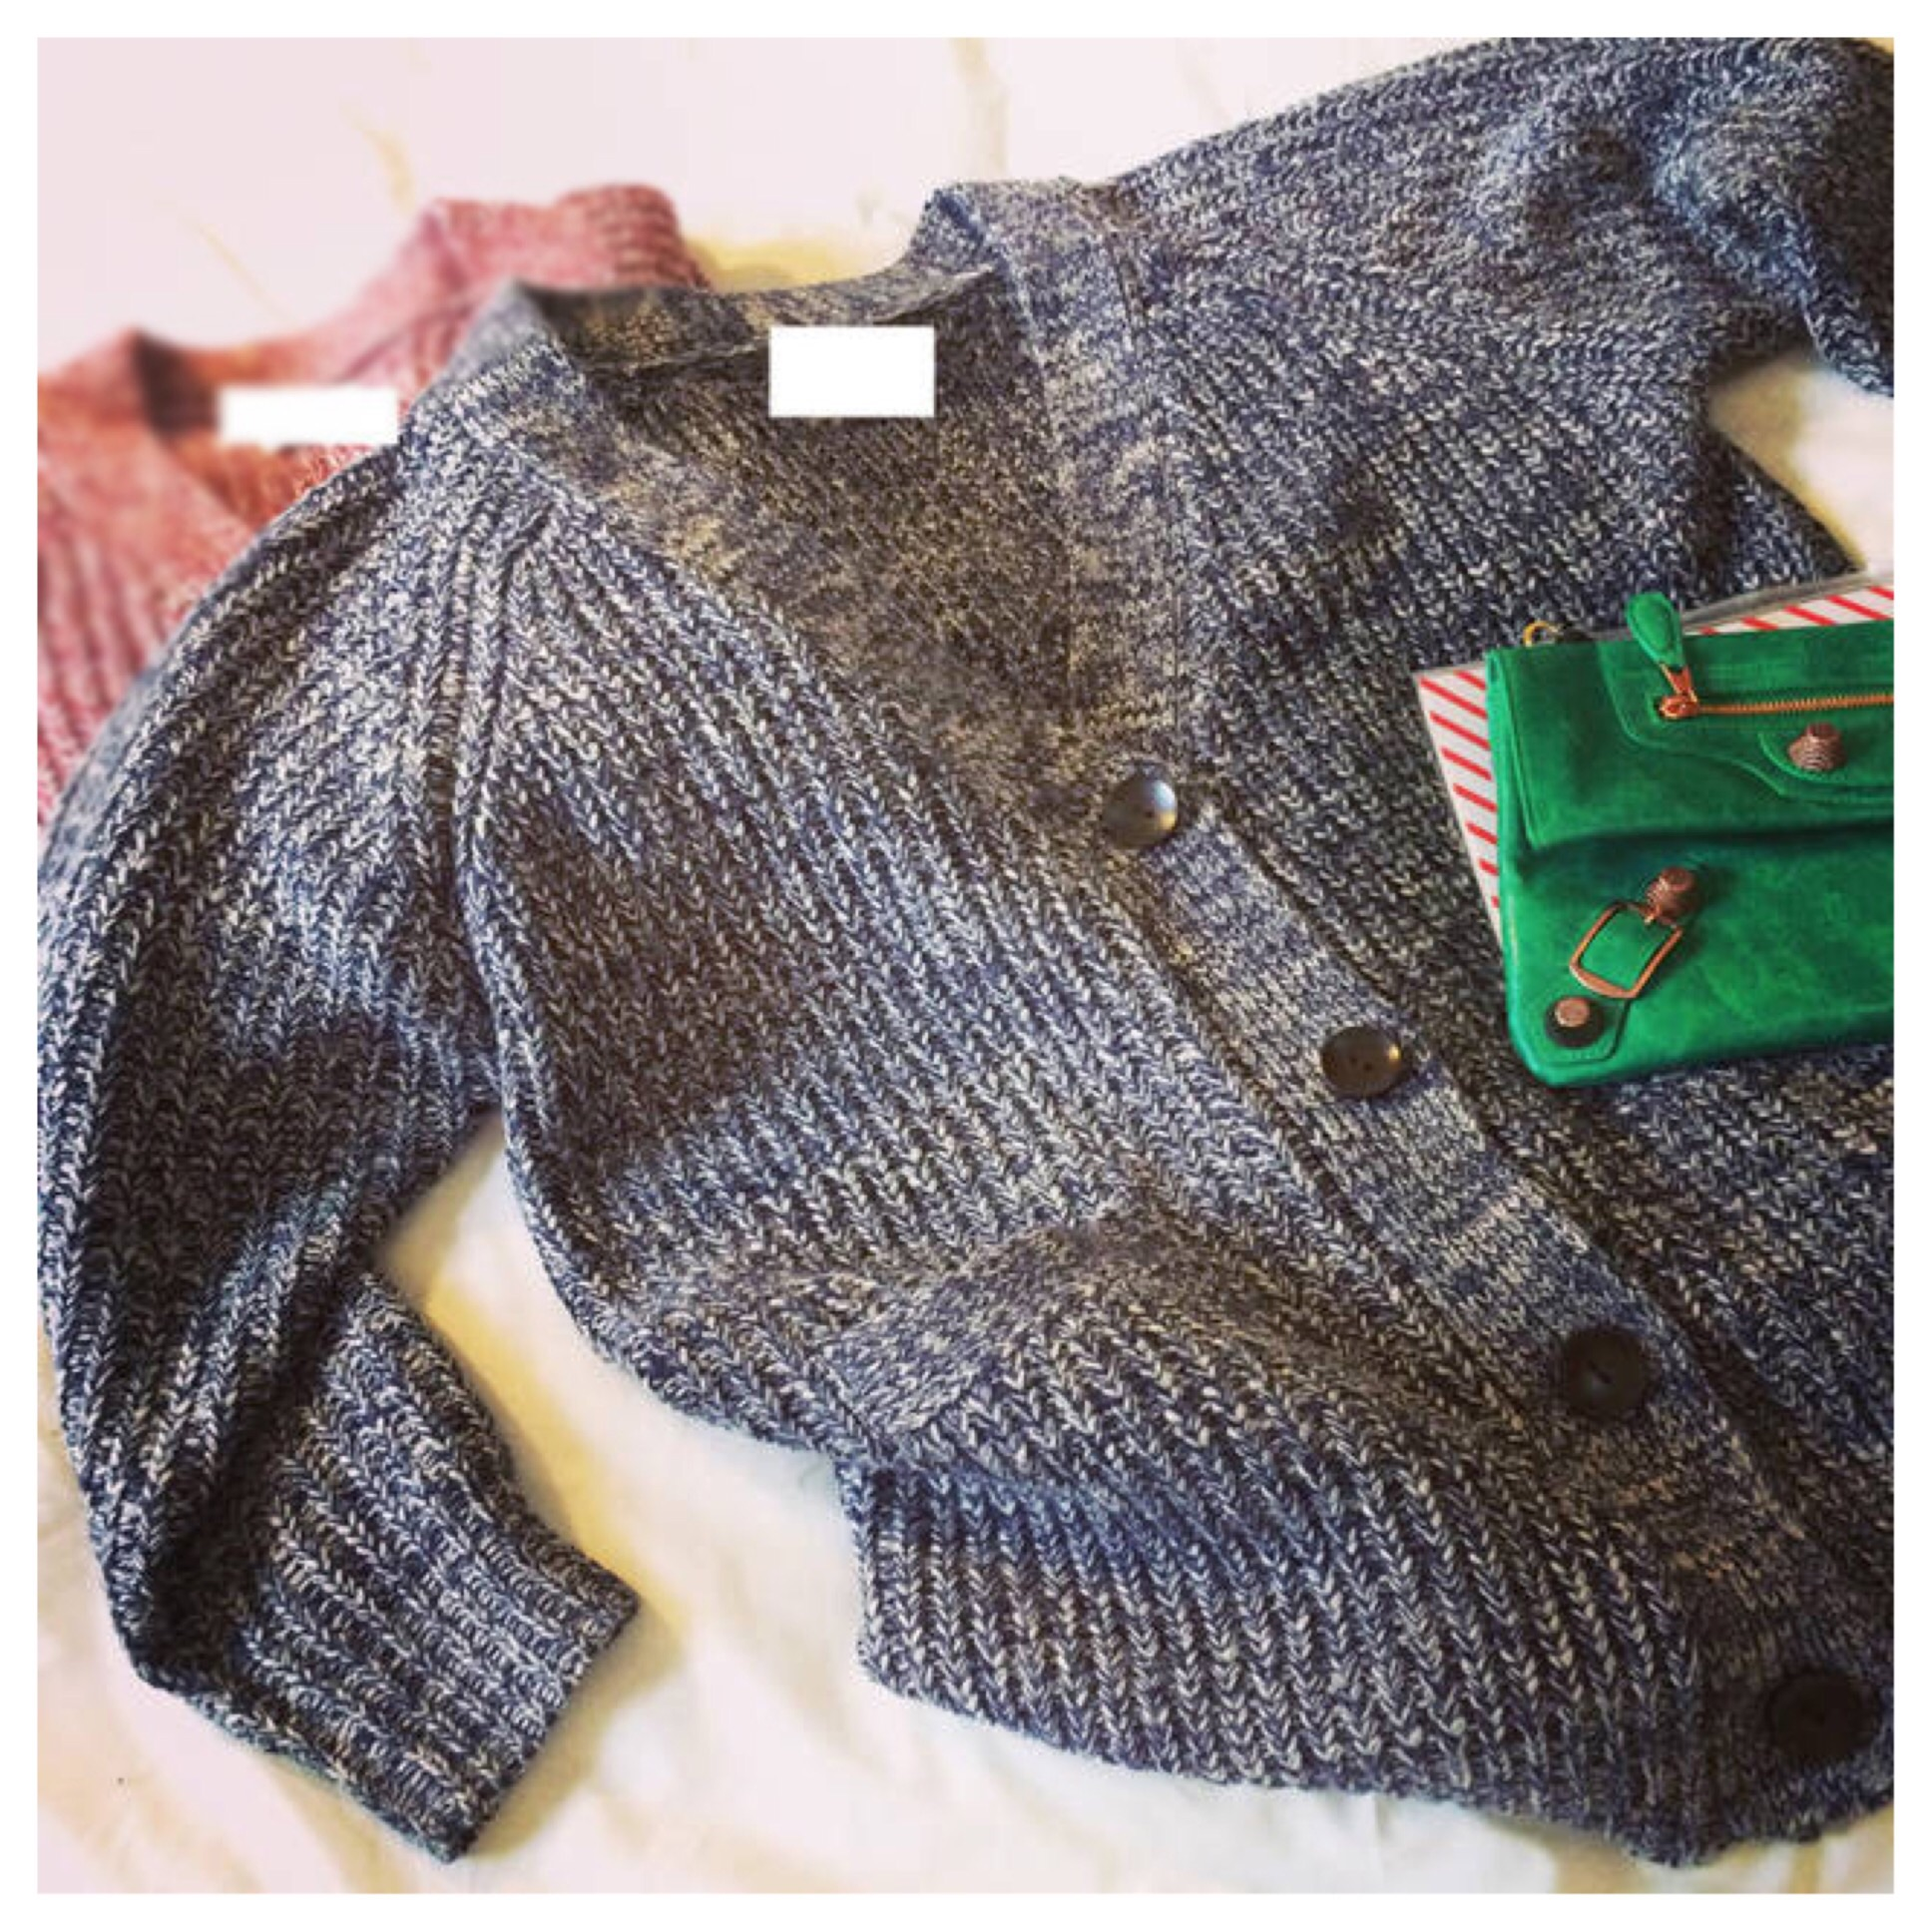 Knitted oversized cardigan with pockets from doublelw on storenvy